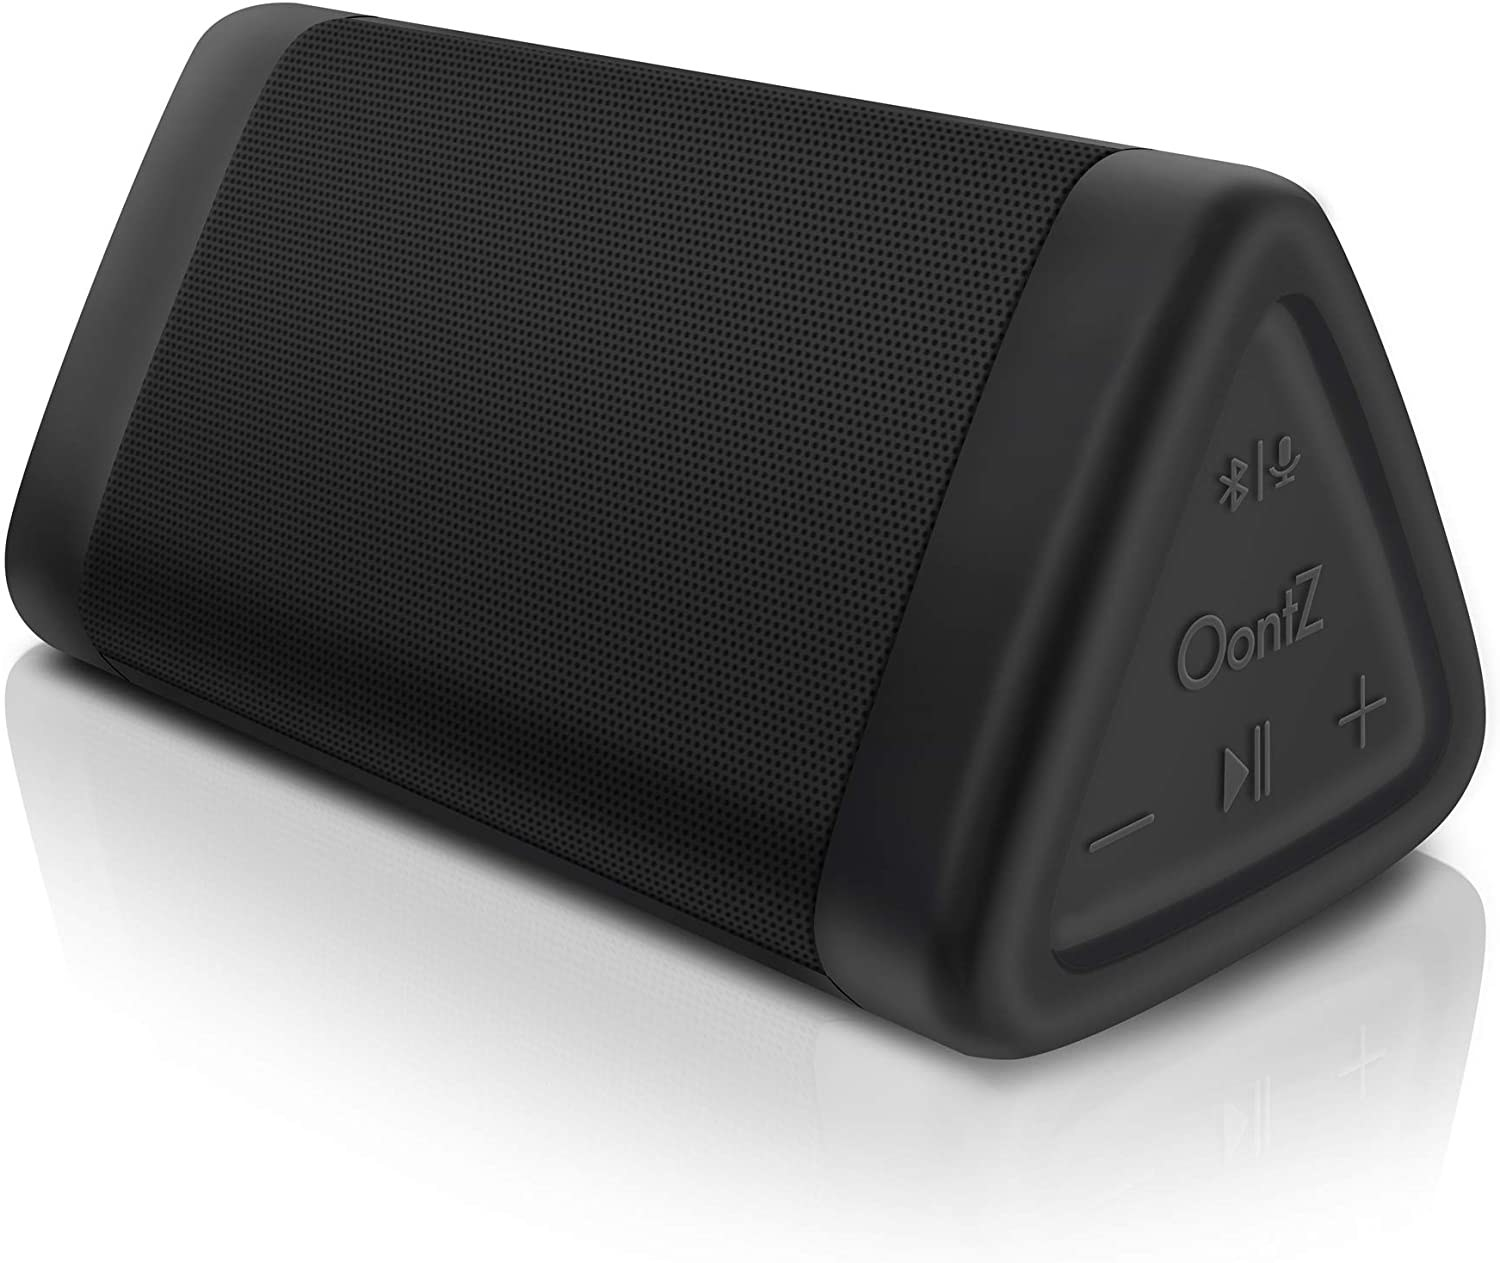 Oontz black Bluetooth speaker with control buttons on the side